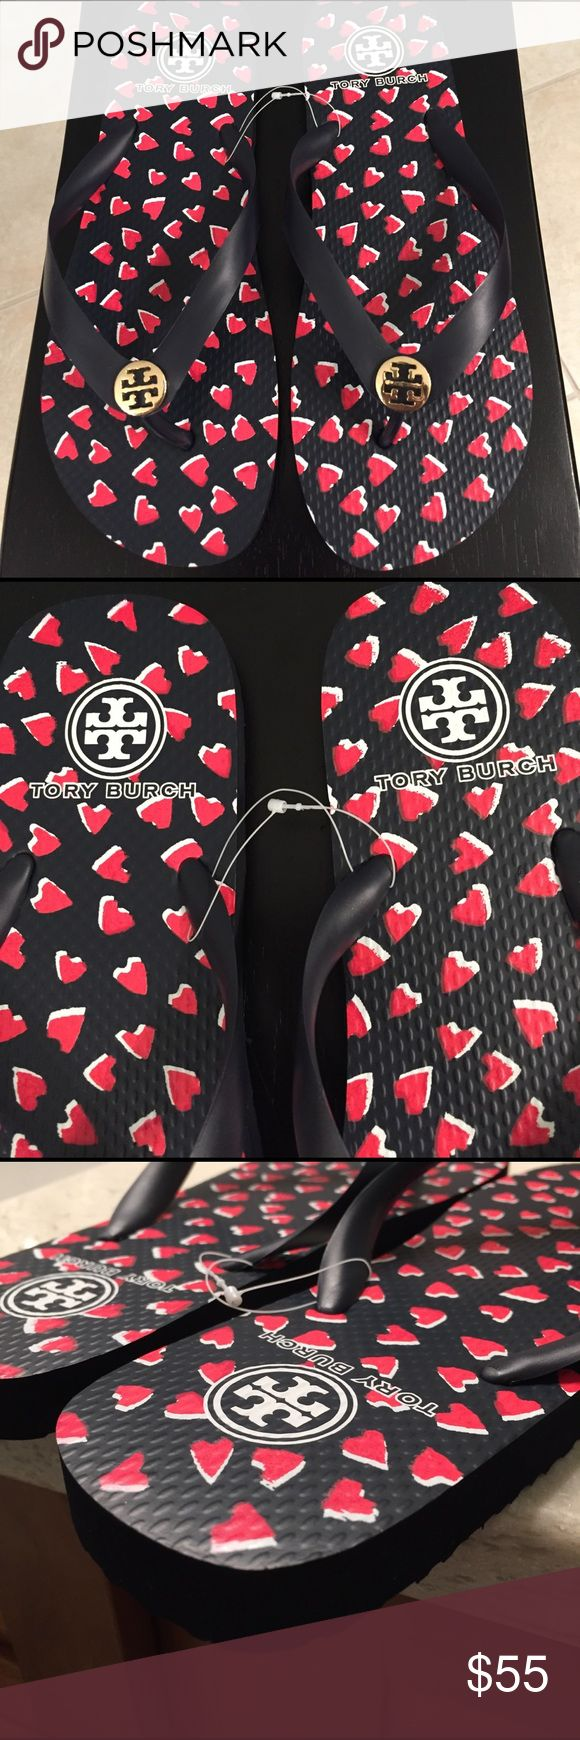 """🆕Tory Burch """"Heart"""" Navy/Red Flip Flips. NWT Soooo cute, these heart ❤️ shape designed flip flops go great with EVERYTHING and are very comfortable. New, with tag stickers, never worn. Tory Burch Shoes Sandals"""